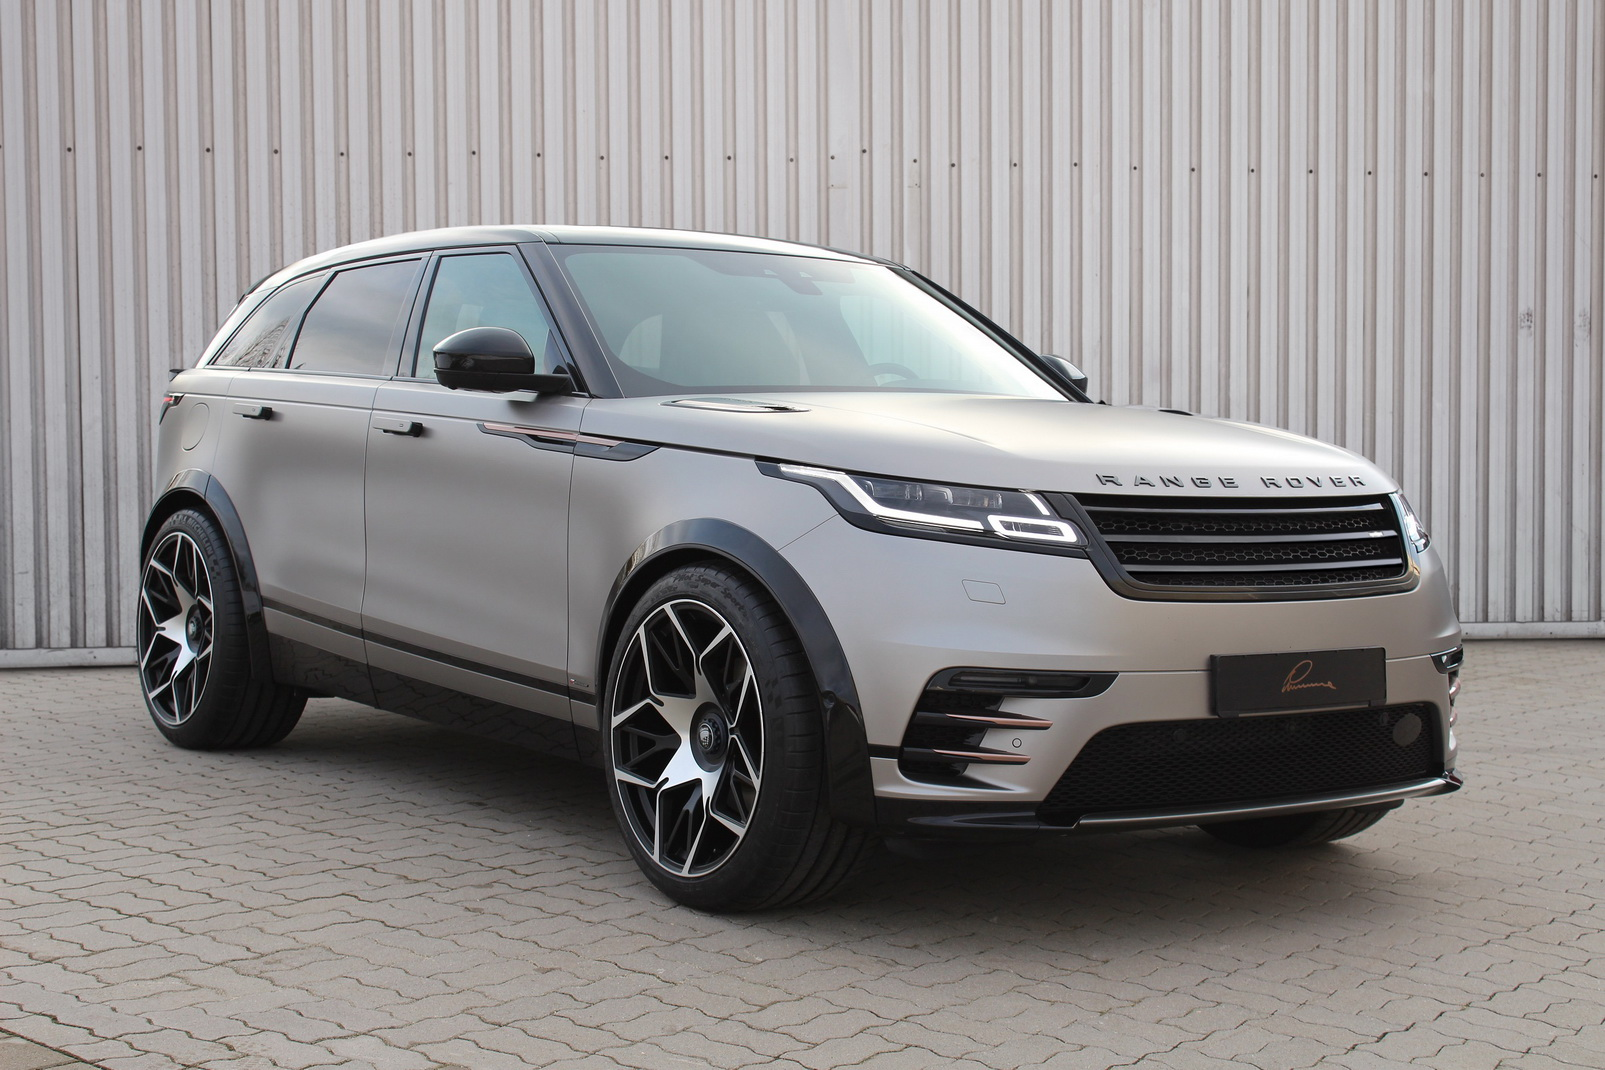 subtle range rover velar tuning by lumma design. Black Bedroom Furniture Sets. Home Design Ideas